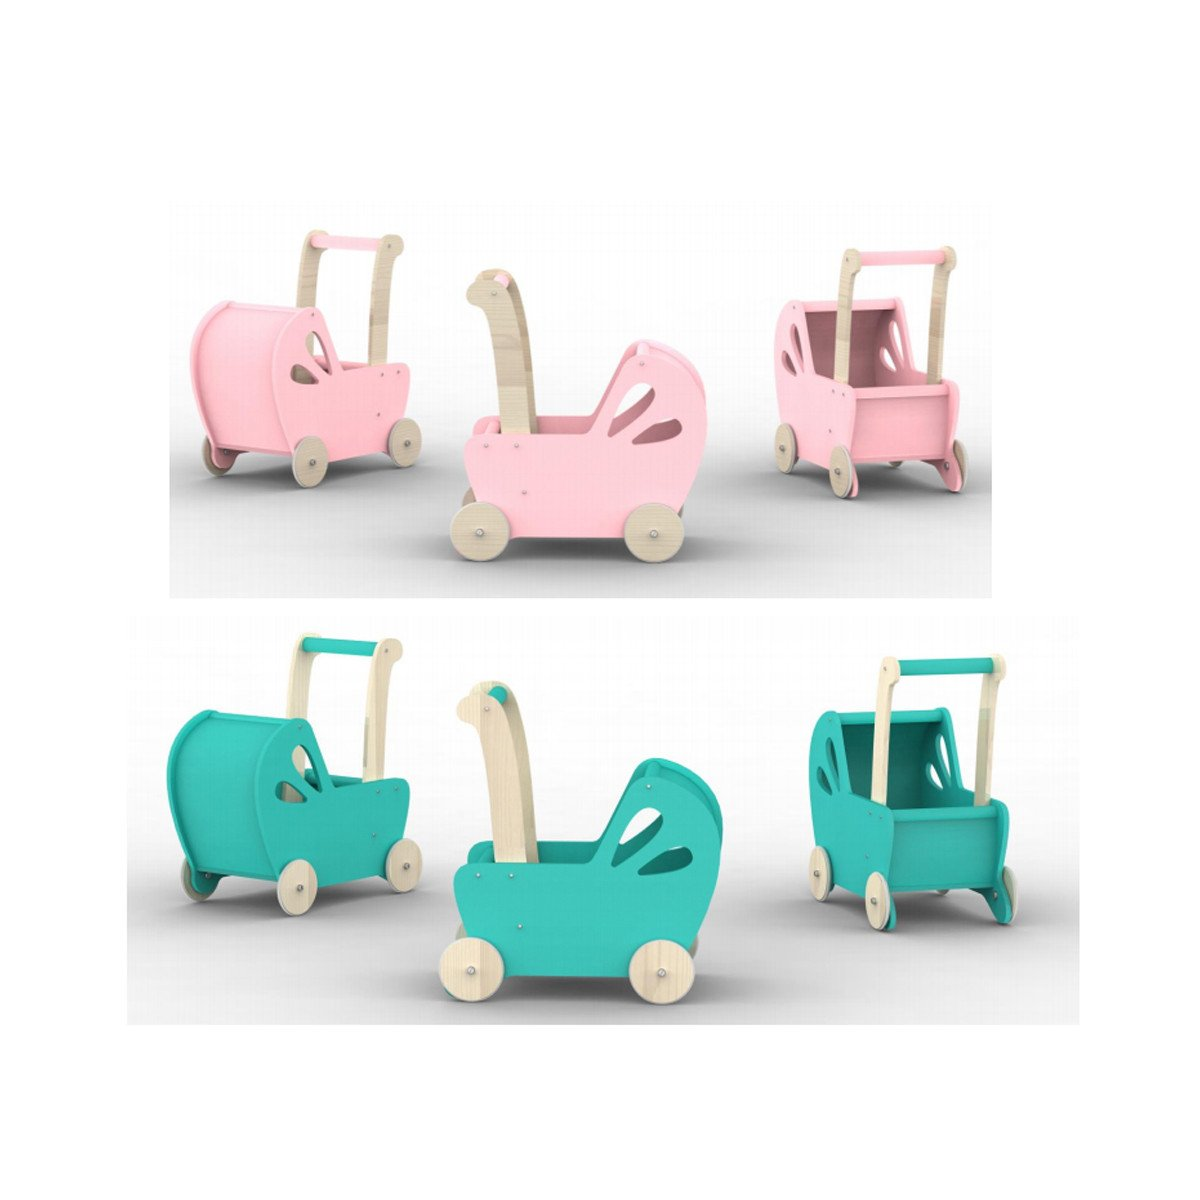 Moover Line Dolls Pram Moover Toys Dolls, Playsets & Toy Figures at Little Earth Nest Eco Shop